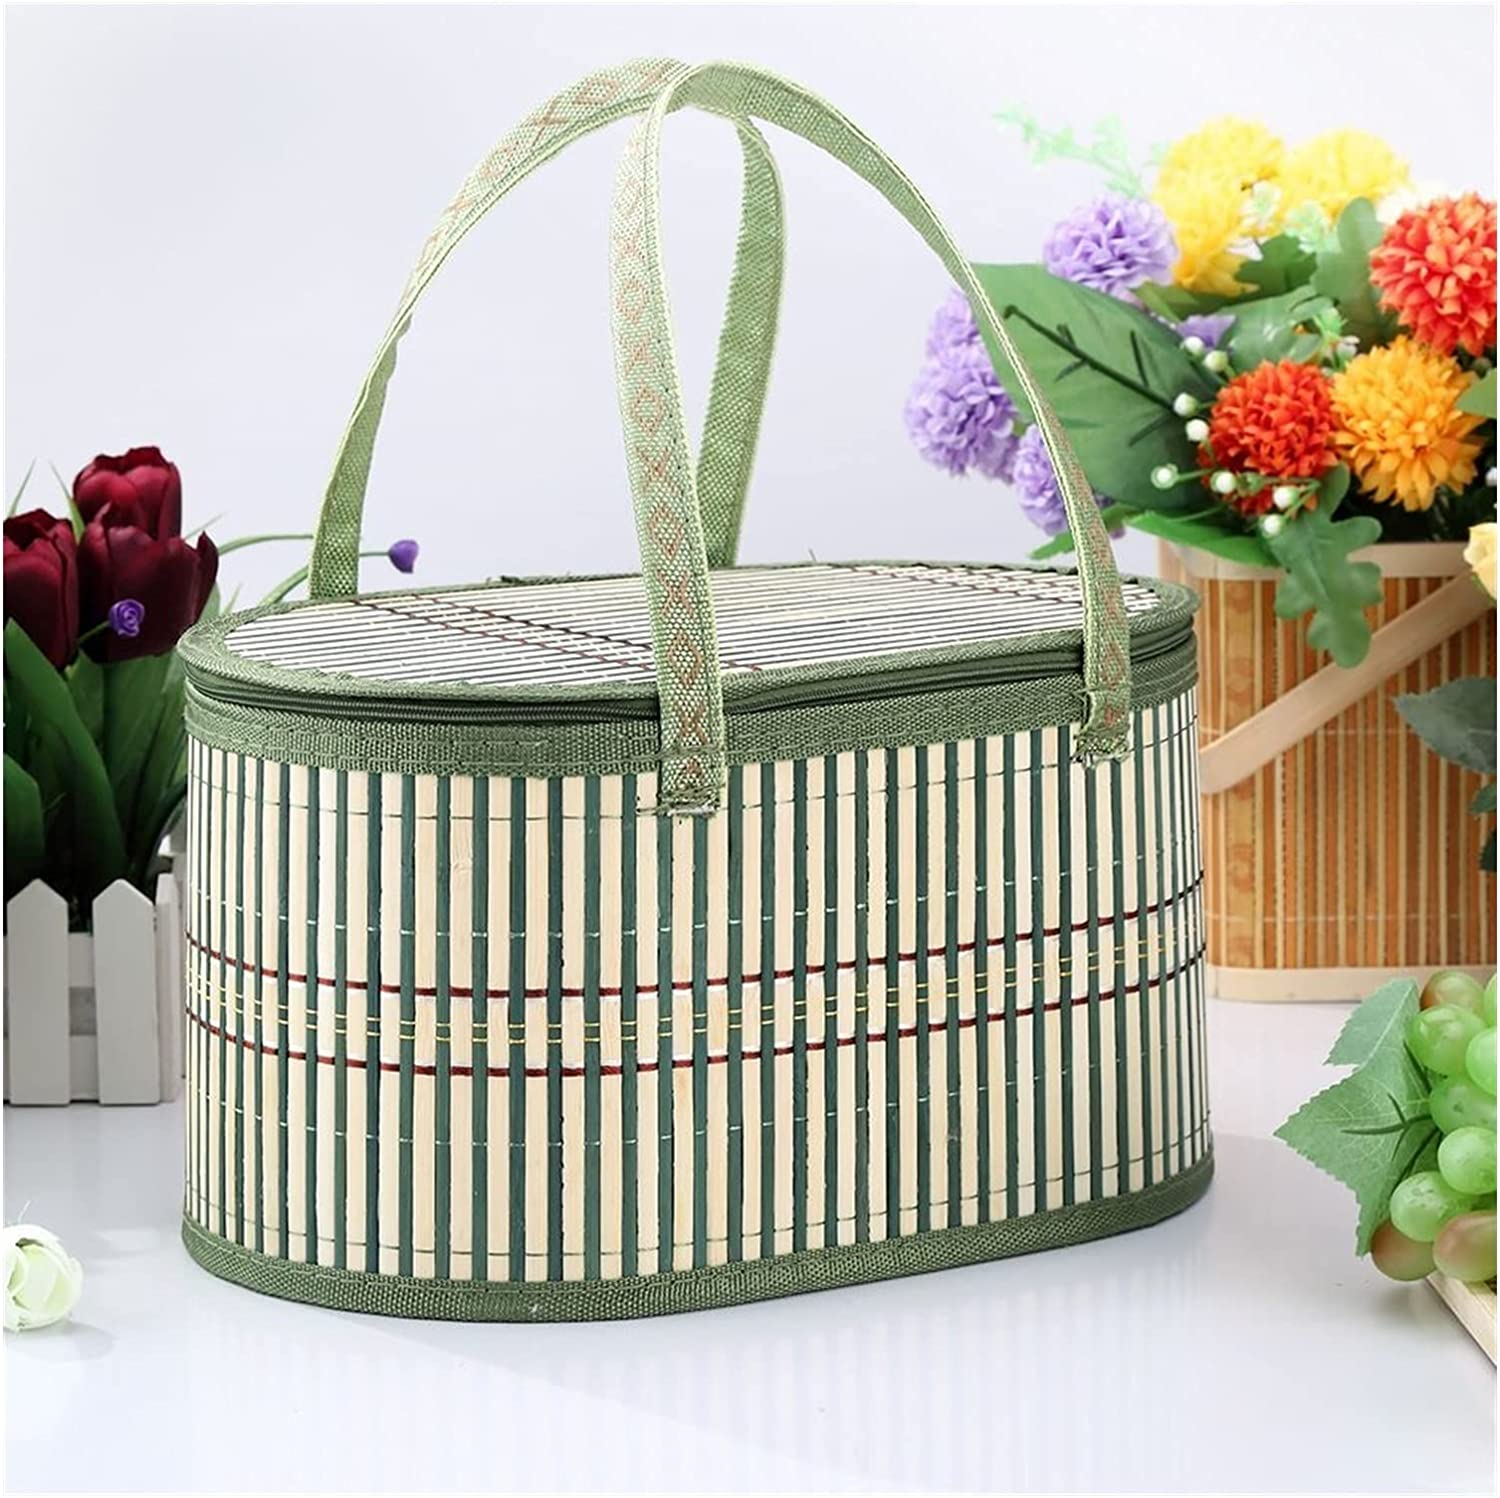 AQHXLS Foldable Houston Mall Super popular specialty store Bamboo Woven Picnic Basket Handle and Lid with